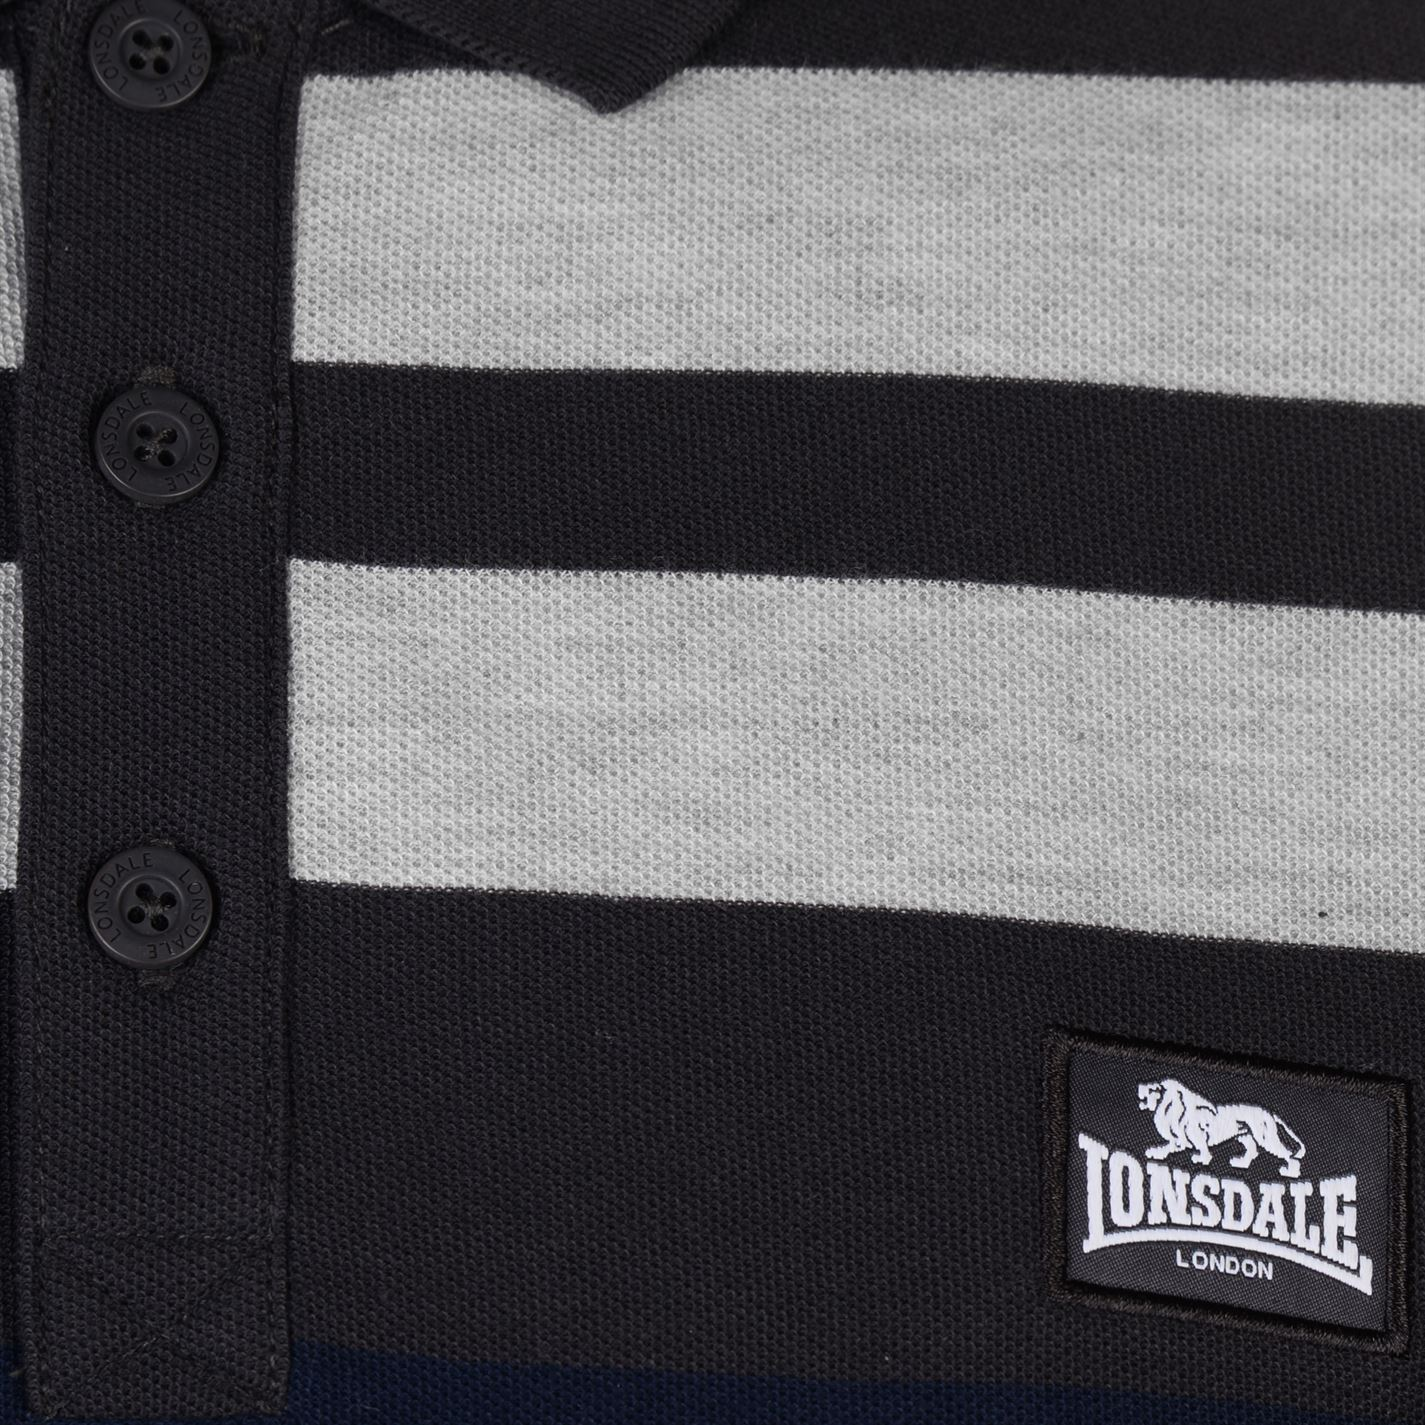 Lonsdale-Mens-Stripe-Polo-Shirt-Classic-Fit-Tee-Top-Short-Sleeve-Button-Placket thumbnail 12